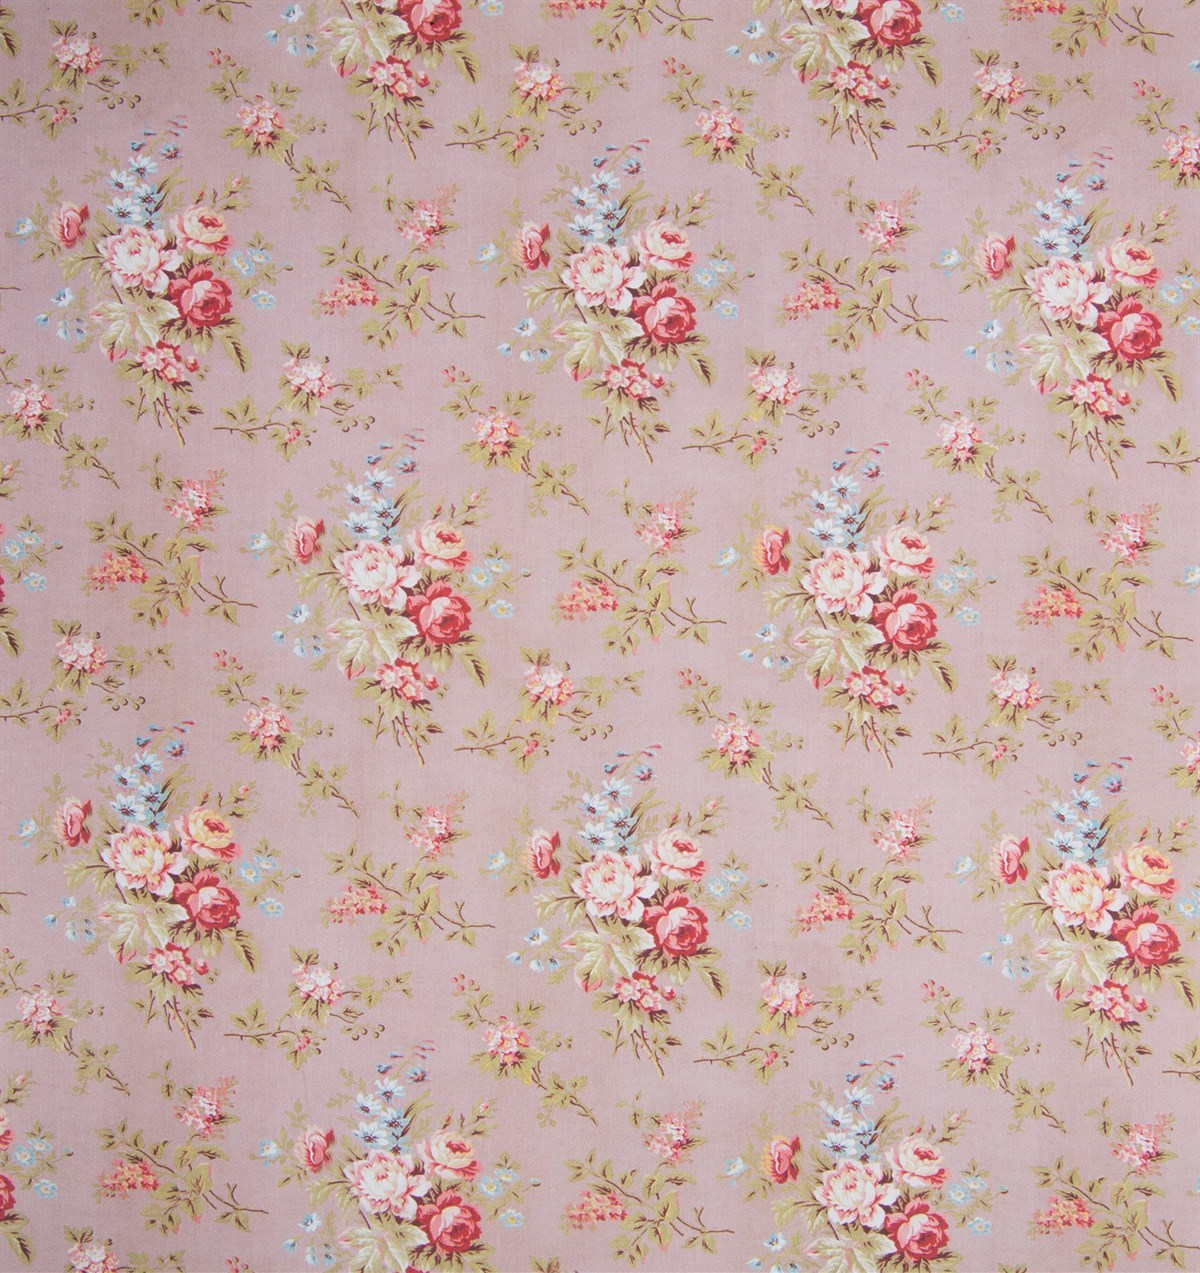 Vintage Floral Lady Vivienne Wrapping Paper